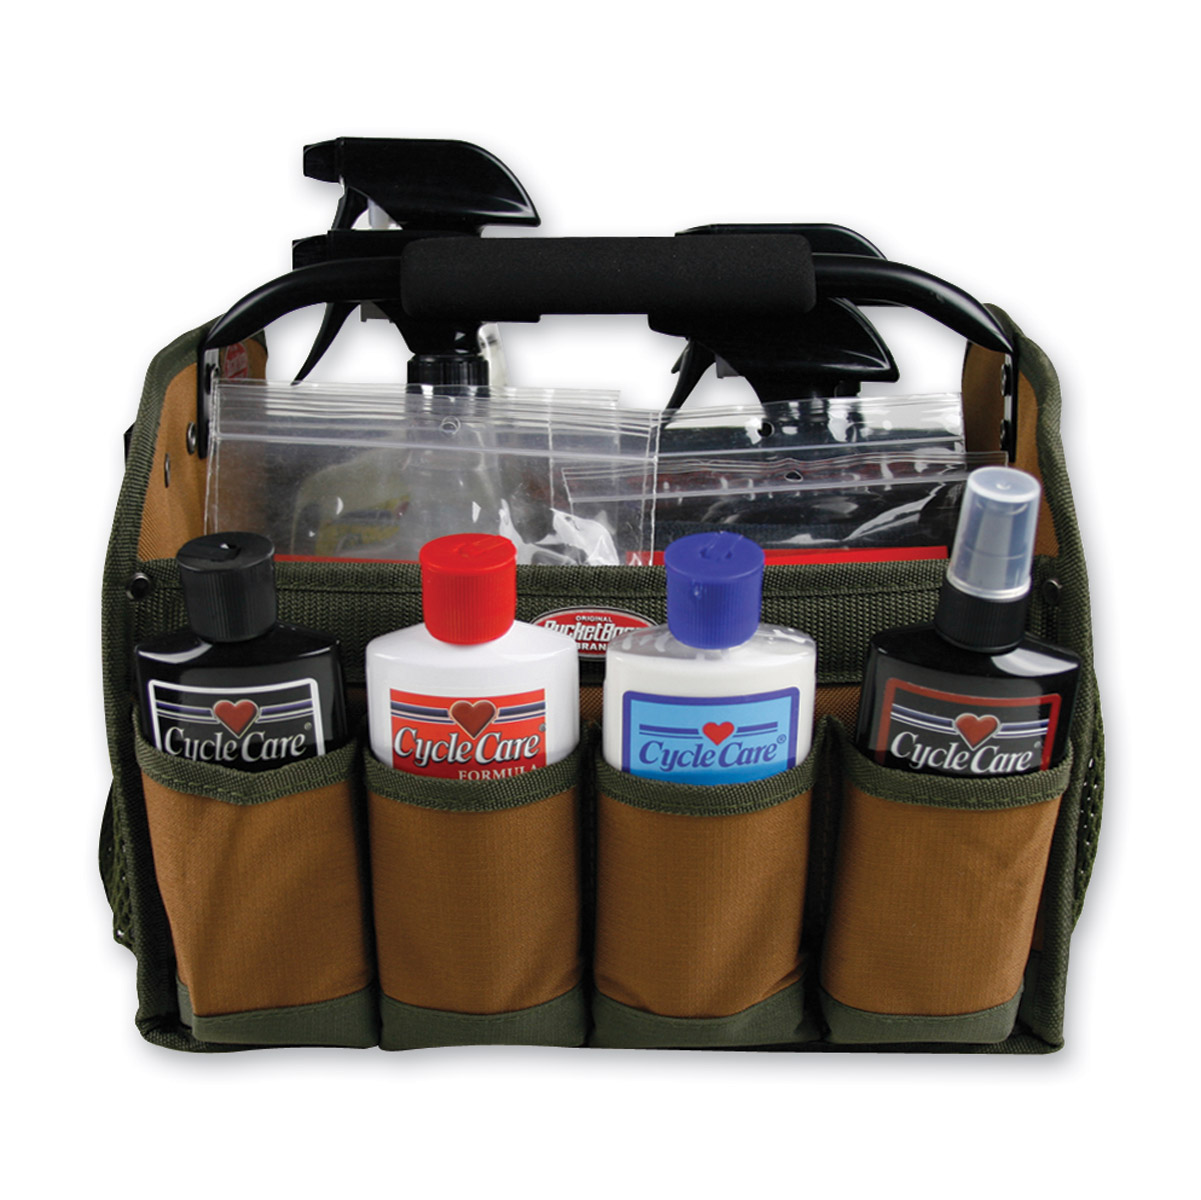 The 14 Best Cleaning Products for Harley Davidson 1